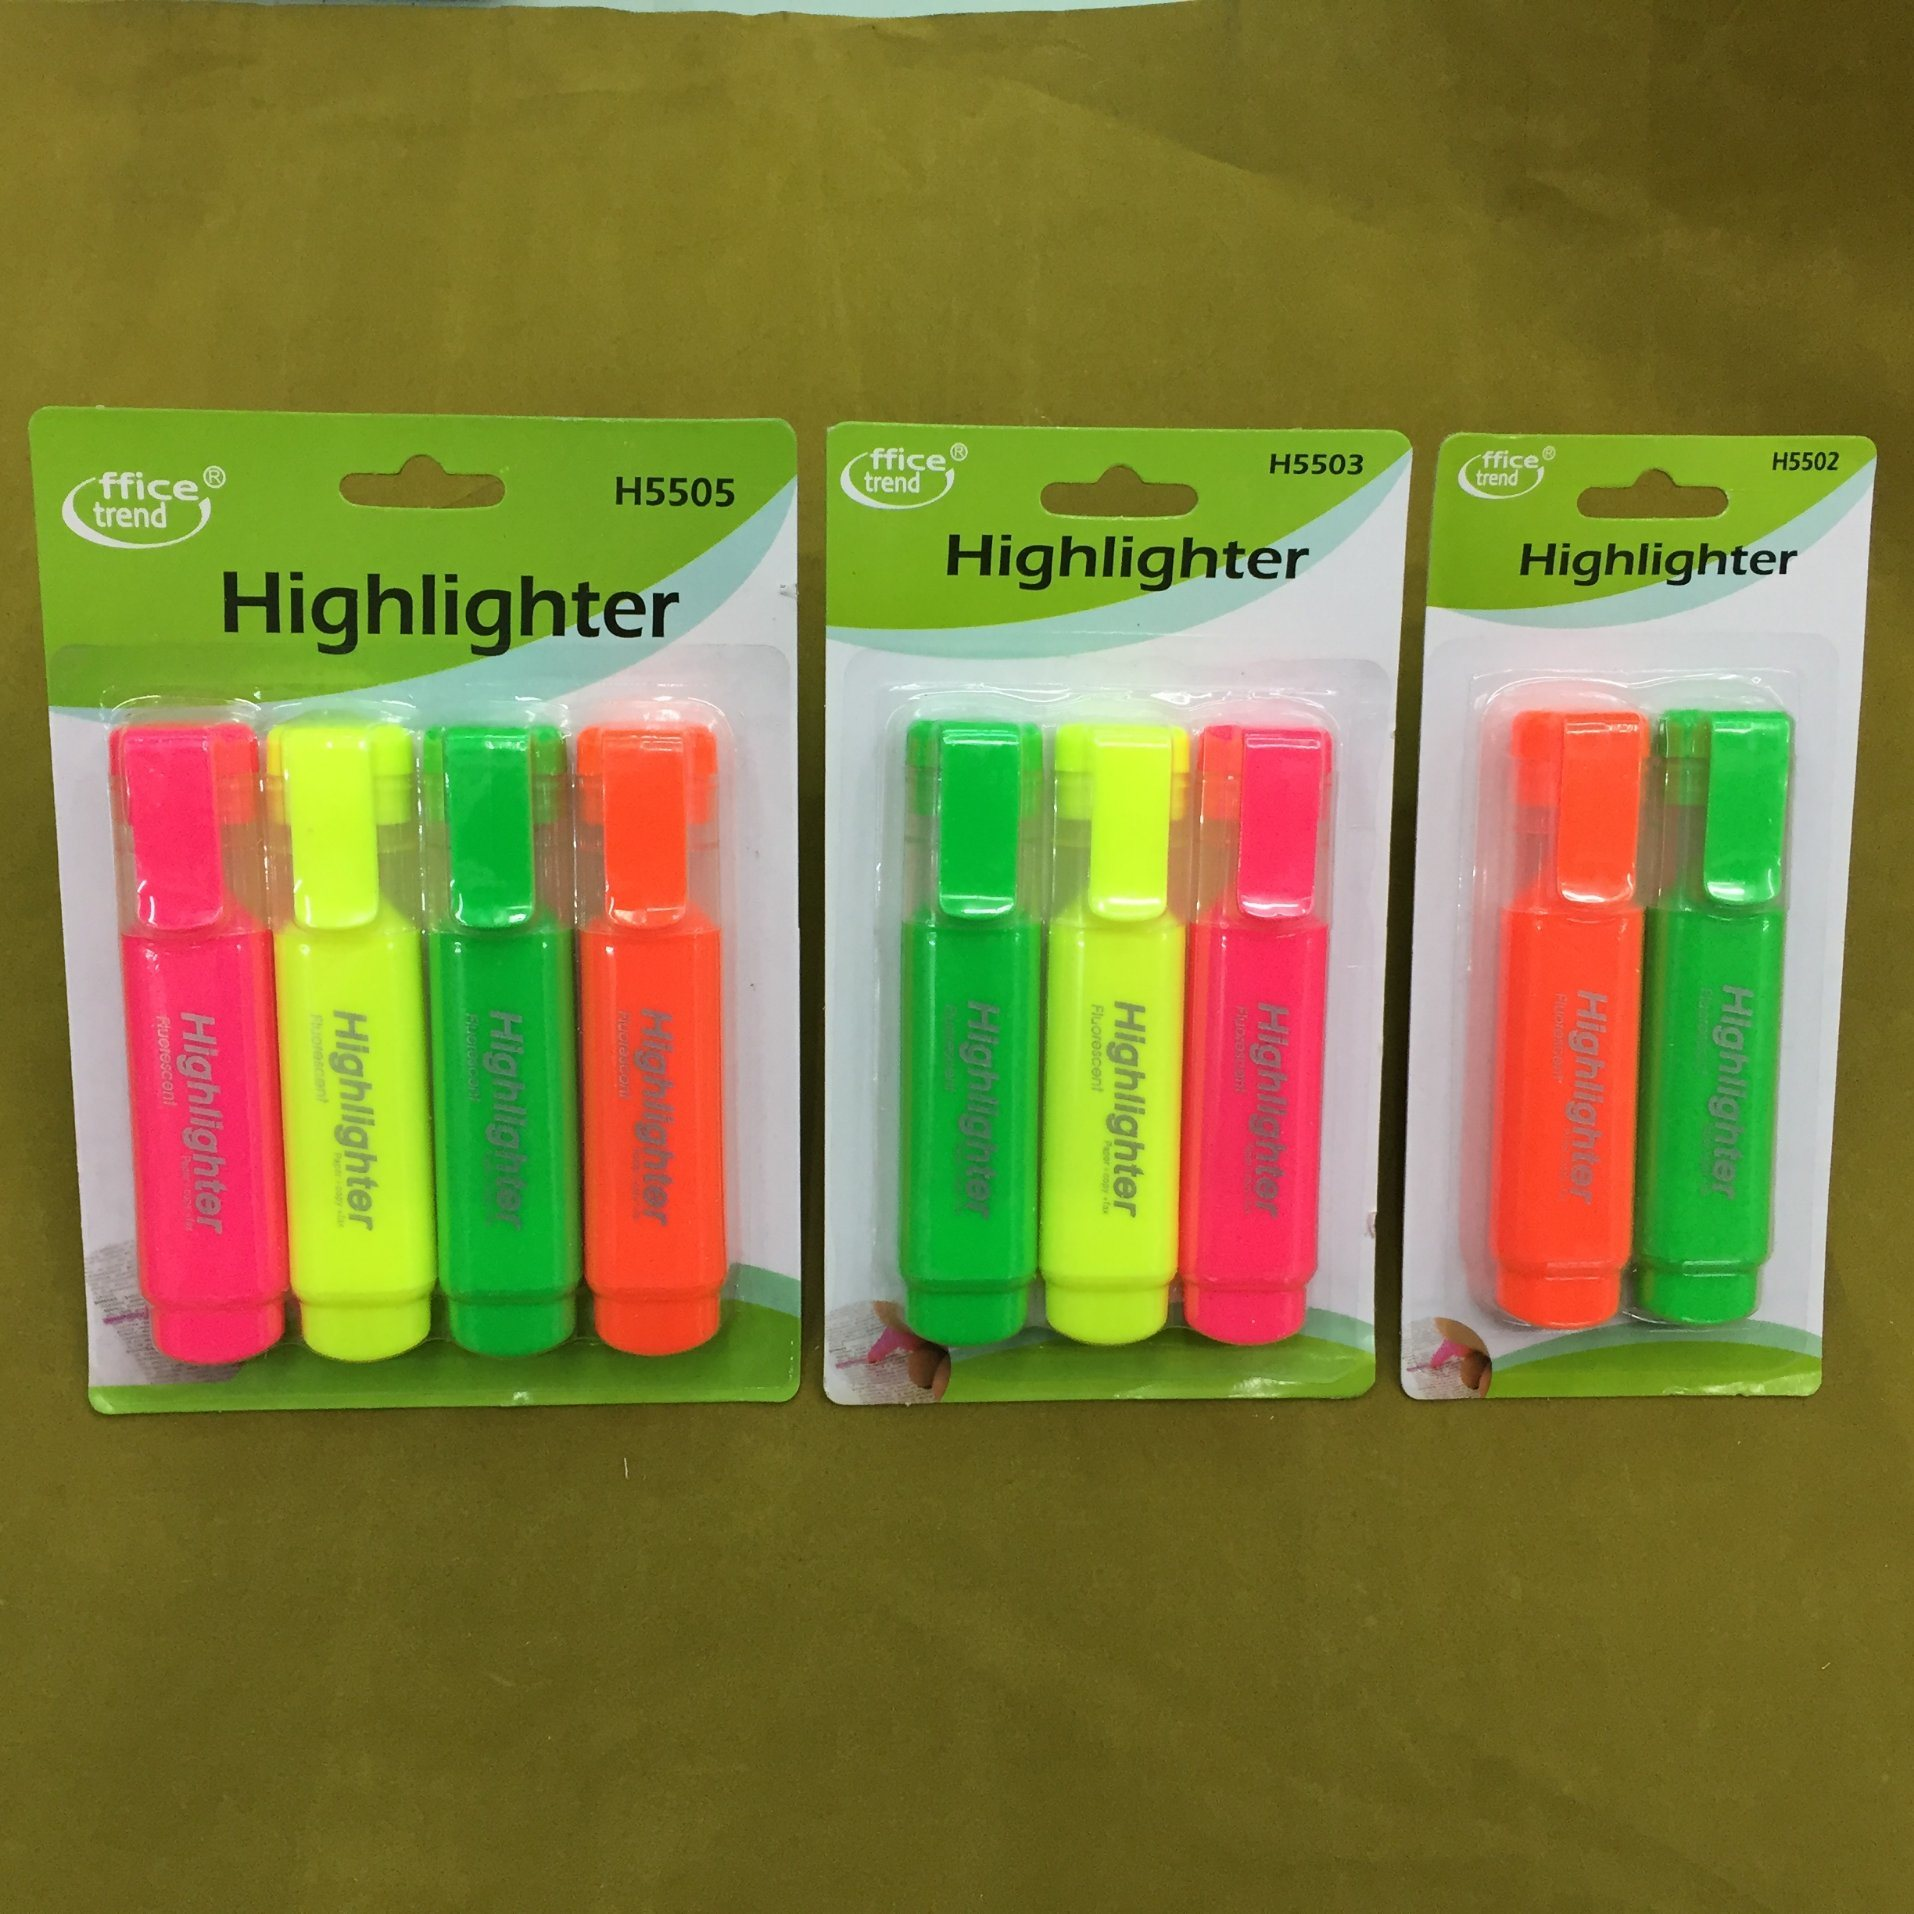 4 Colors Highlighter Marker Pen with Card Packing, Fluorescent Pen